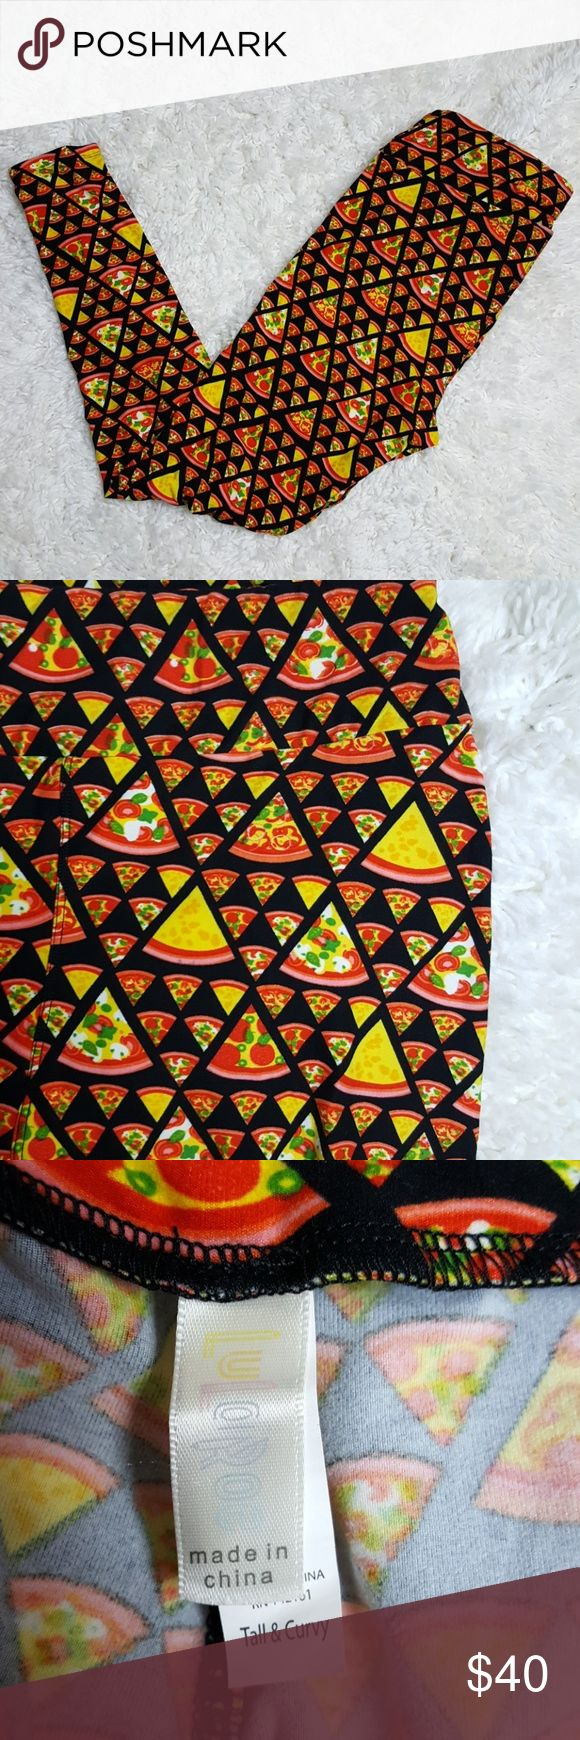 Lularoe Pizza Leggings TC Tall and Curvy Fun pizza leggings! These have been worn and washed nut have no flaws. Nice condition! Women's size Tall and Curvy.   #597 LuLaRoe Pants Leggings